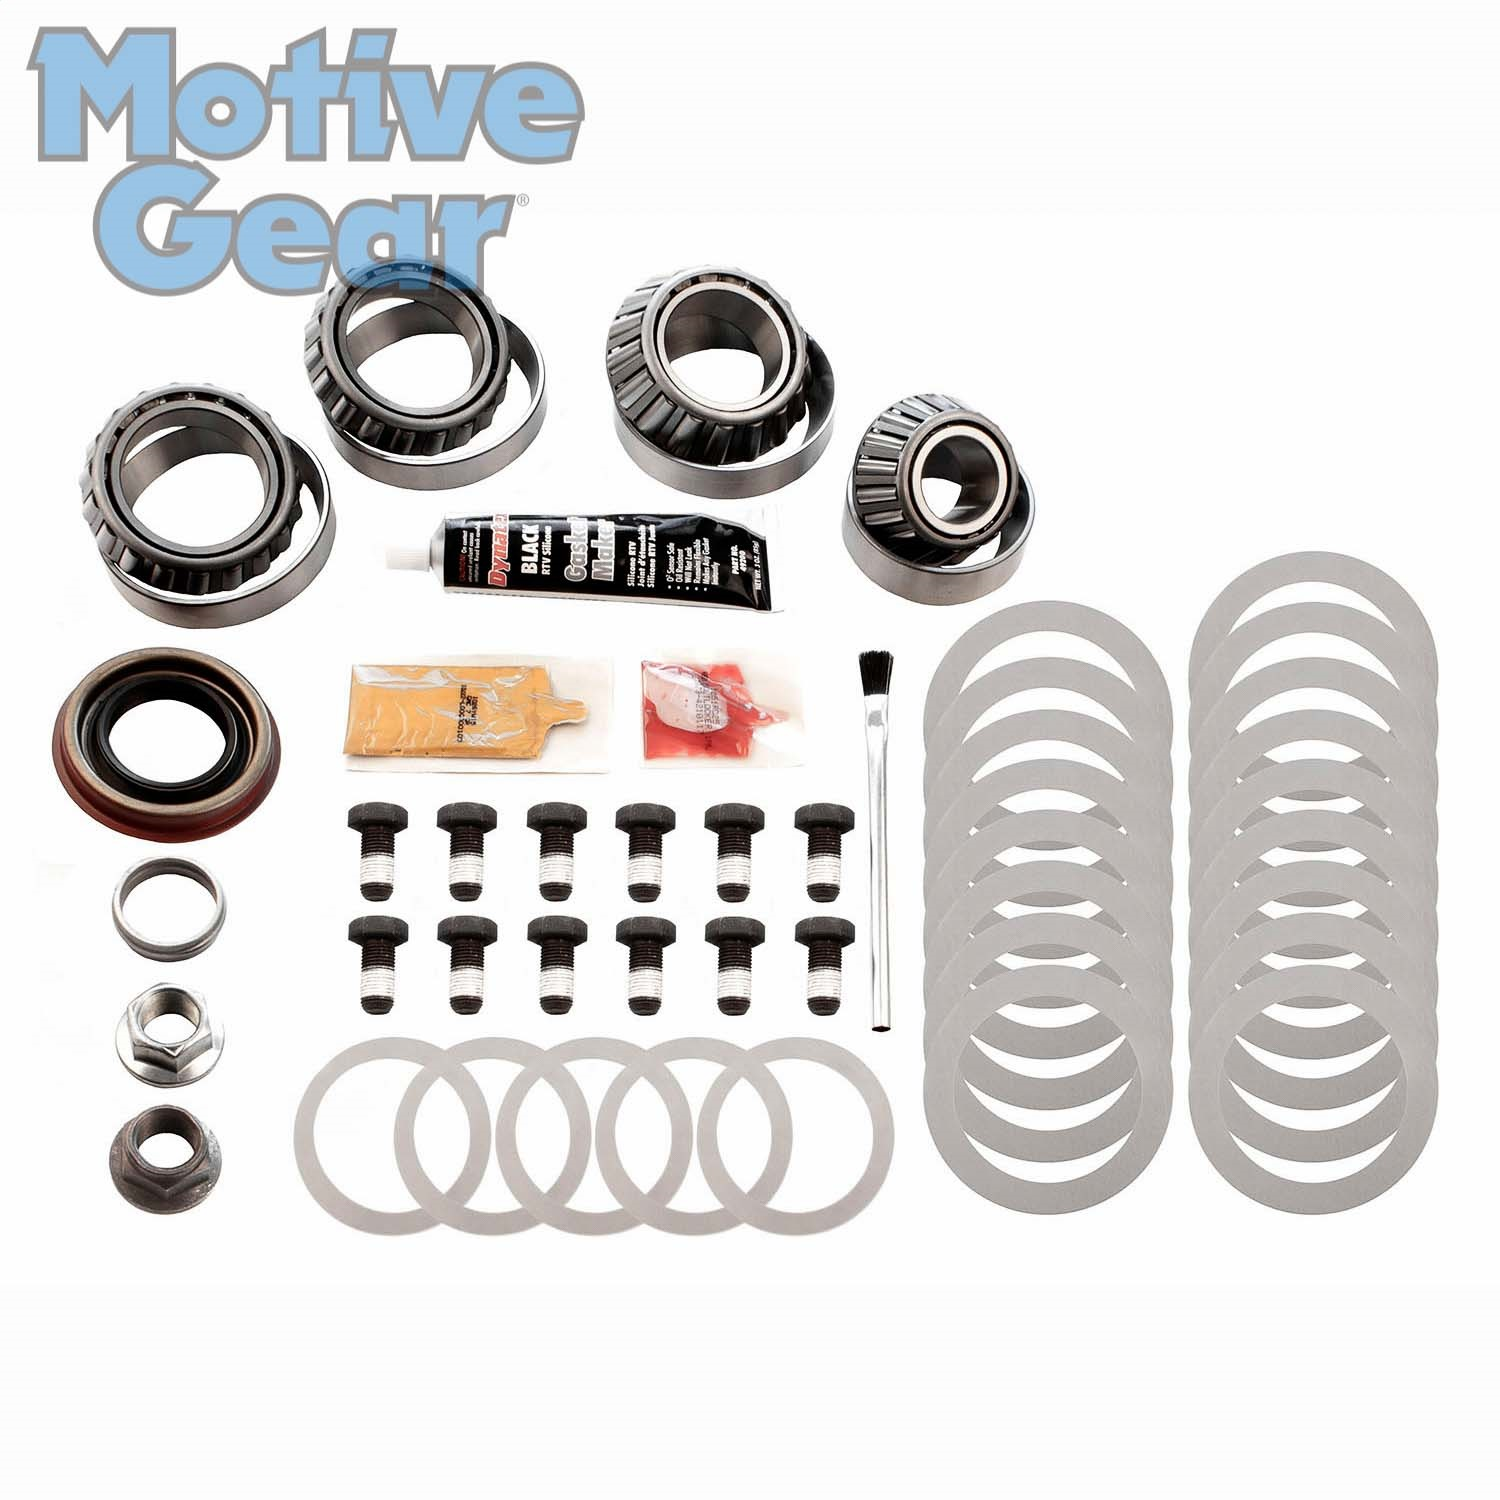 Motive Gear R9.75FRLMK MOGR9.75FRLMK FORD 9.75 1999-UP MASTER BEARING KIT